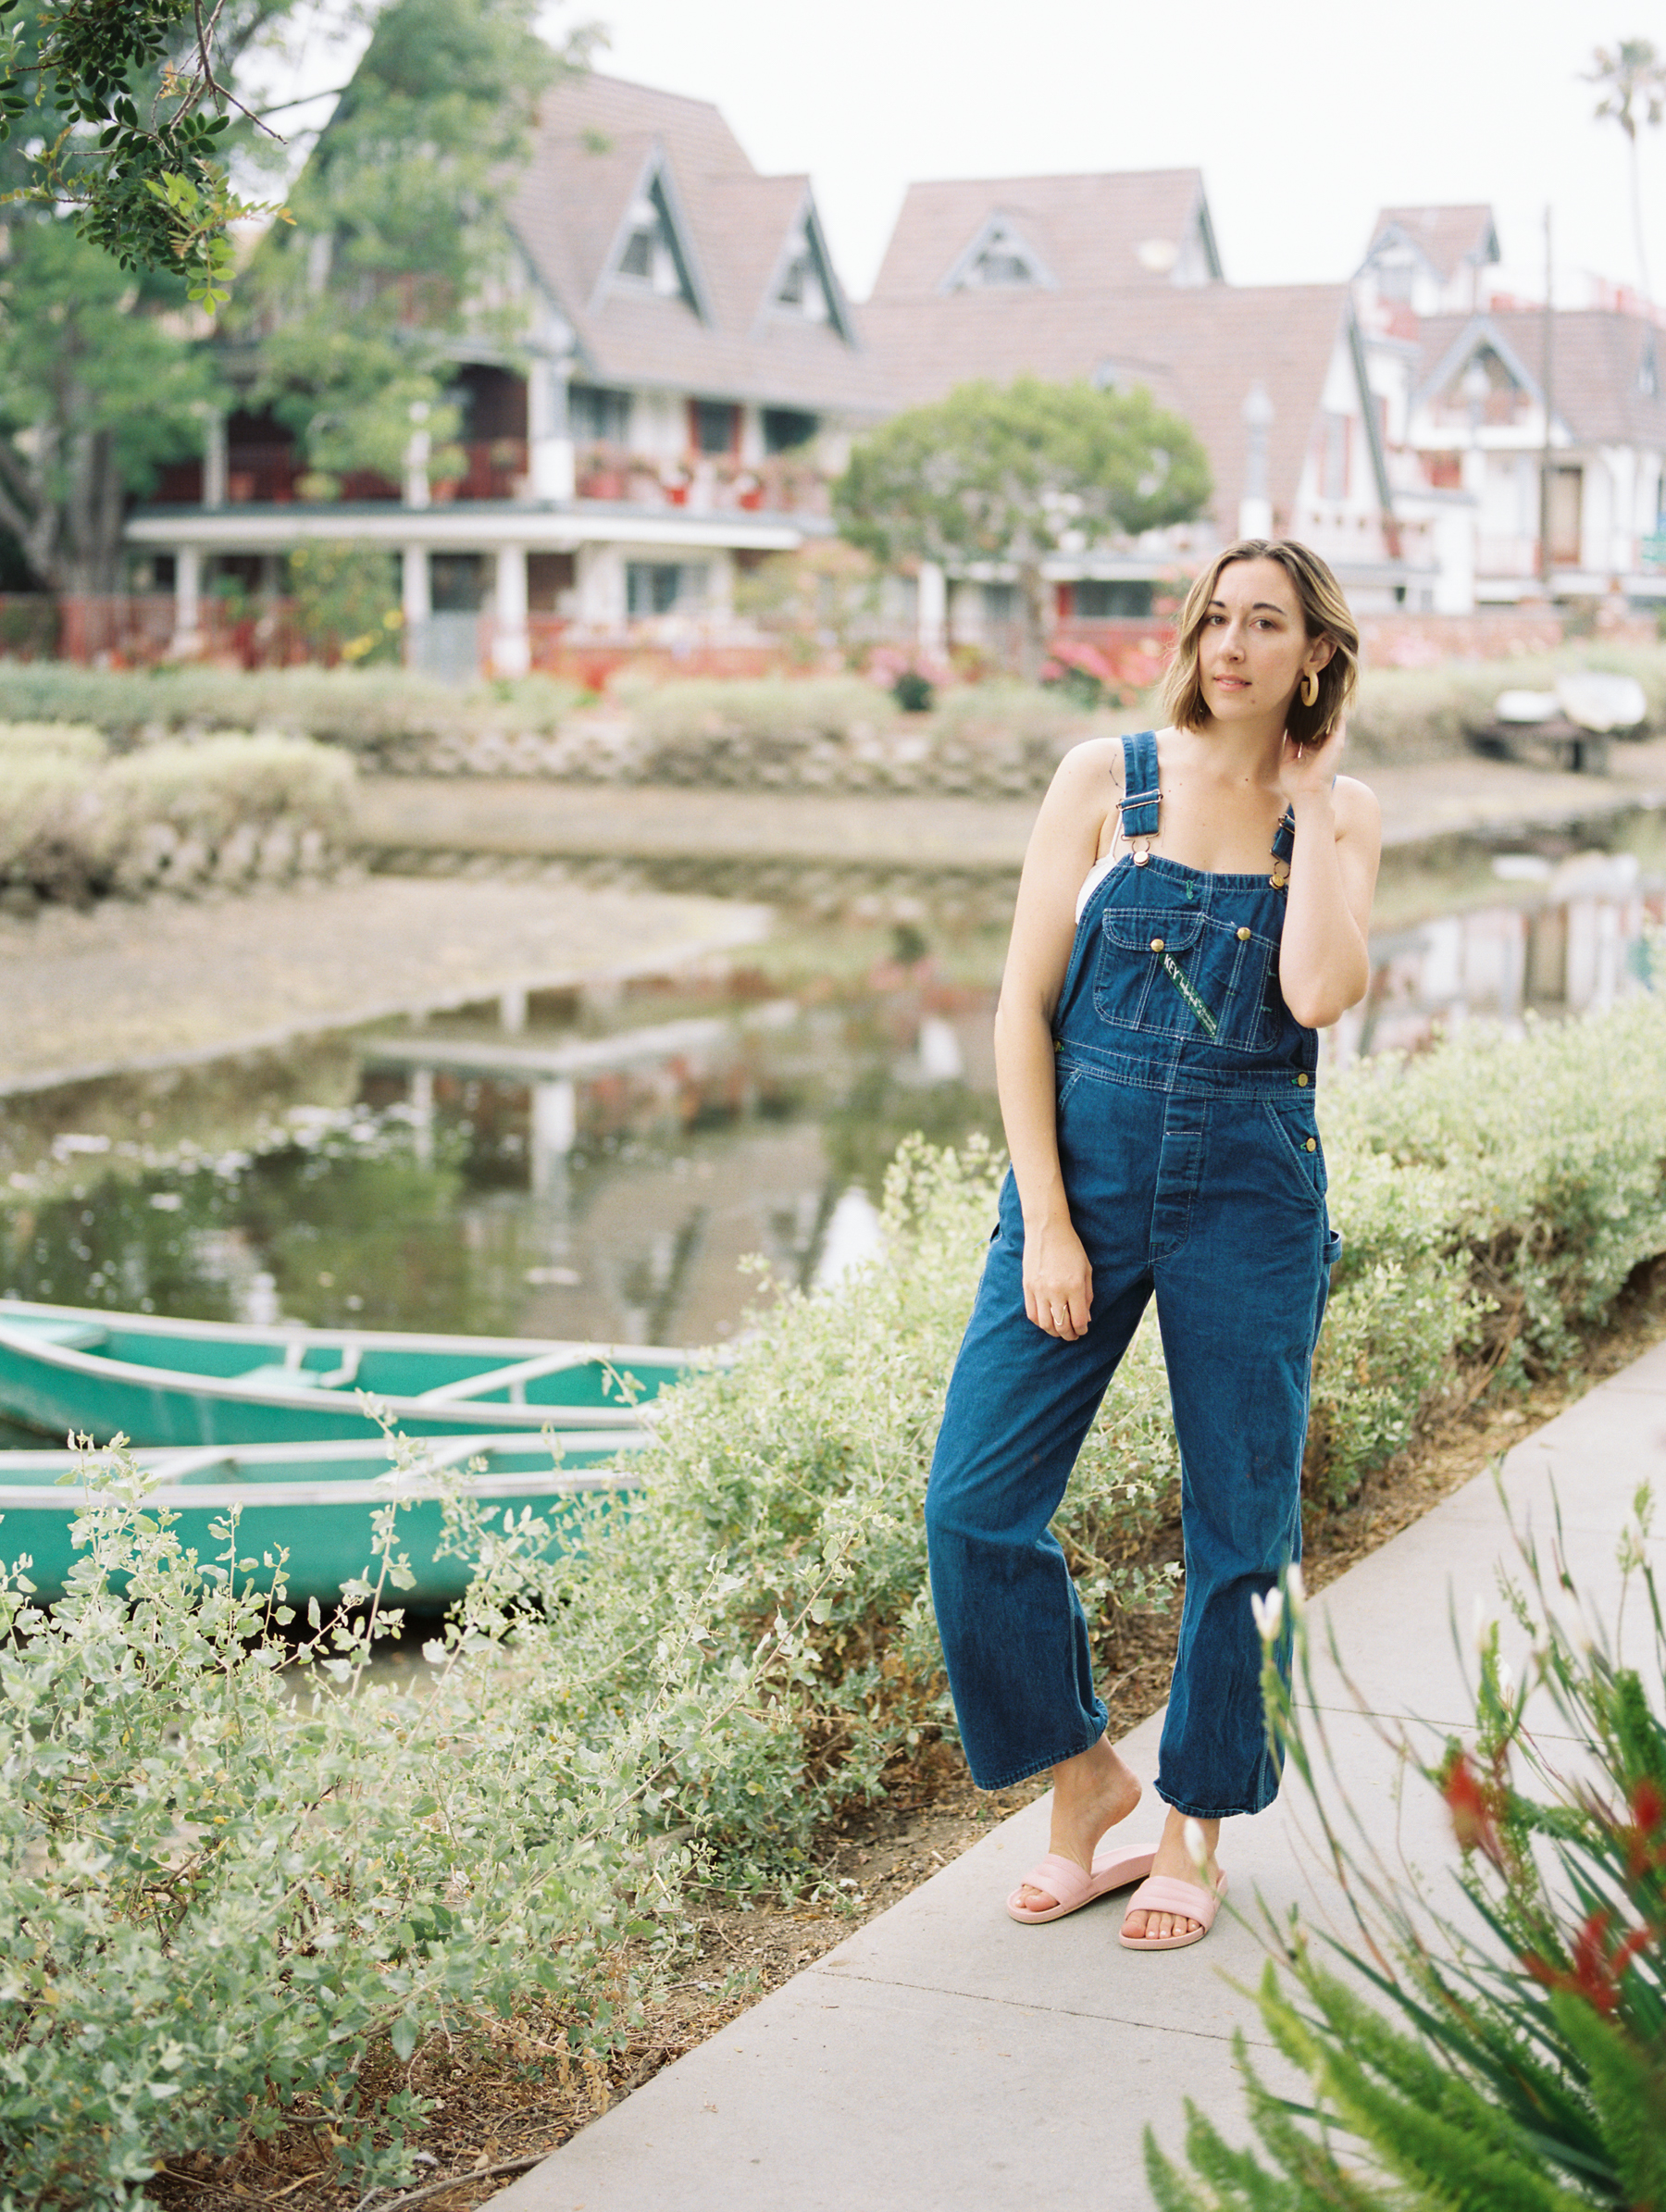 Studio Étincelle // San Francisco based photographer + content creator for extraordinary women and elevated brands